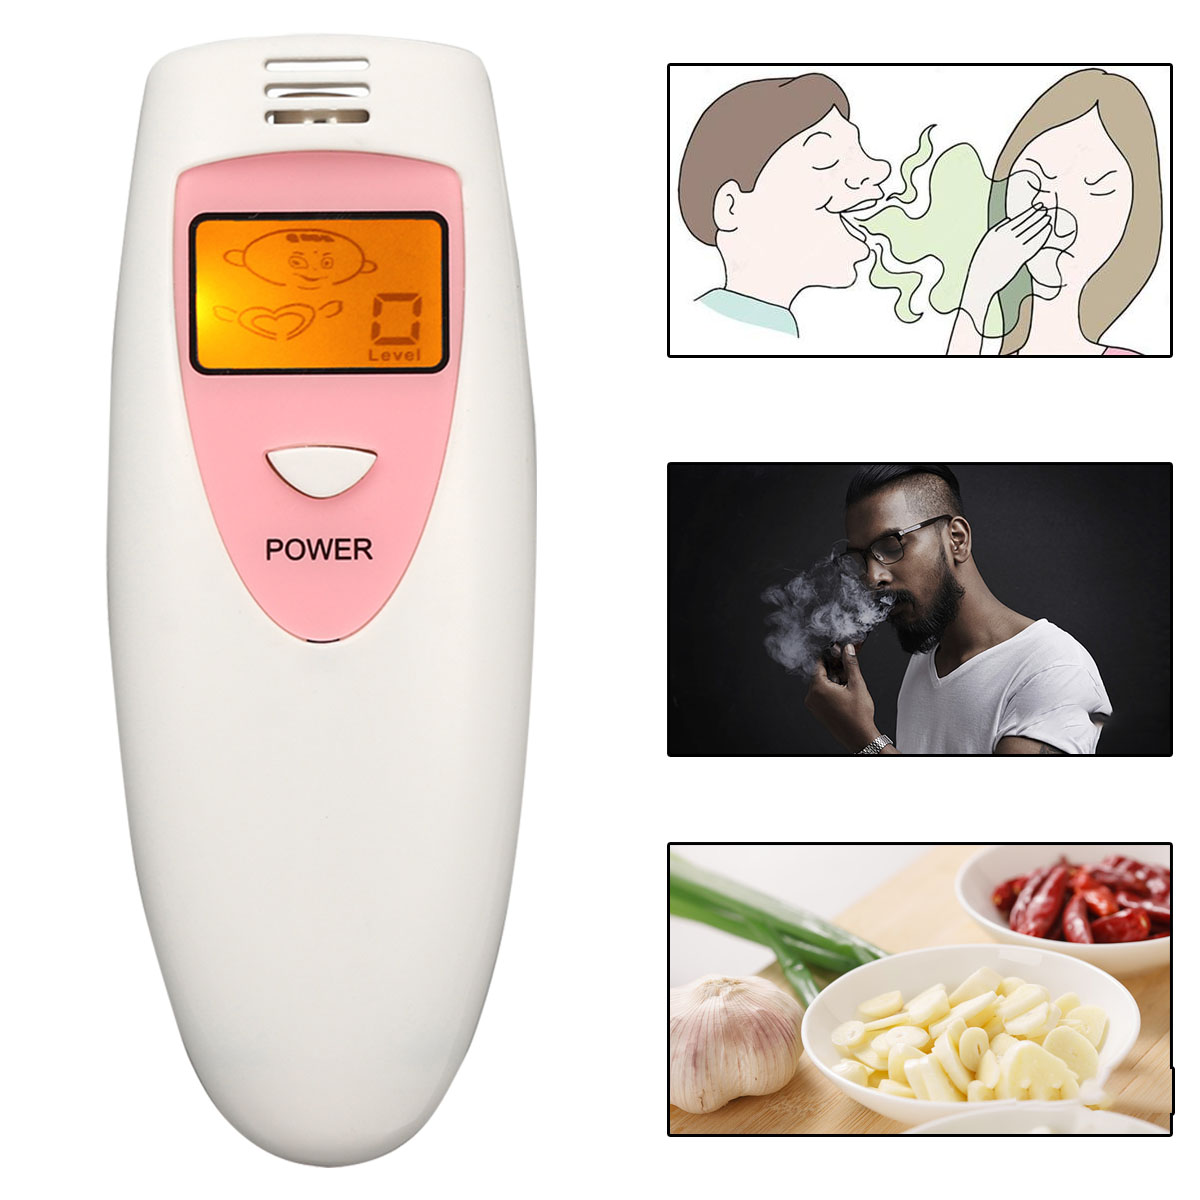 Portable Bad Breathe Smell Checker Halitosis Detection Tool Anti Oral Odour Test Hygiene Condition Tester Successful Dating KitPortable Bad Breathe Smell Checker Halitosis Detection Tool Anti Oral Odour Test Hygiene Condition Tester Successful Dating Kit